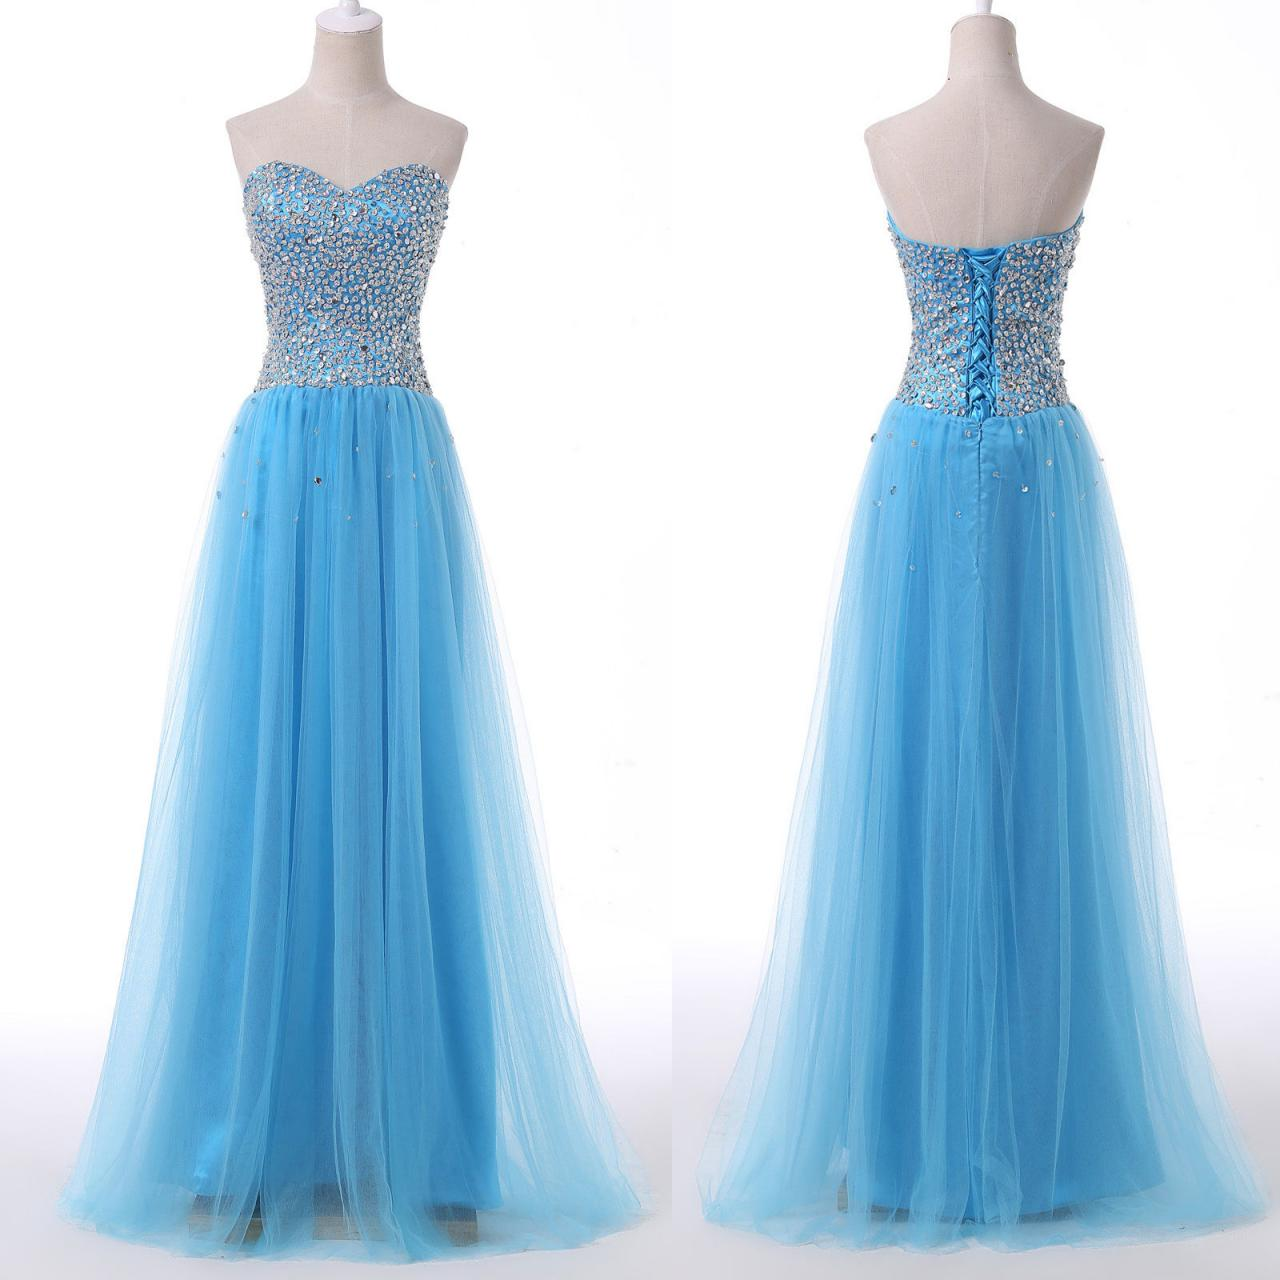 Beaded Prom Dresses,Sweetheart Prom Dresses,Formal Dresses 2018,Sky Blue Party Dress